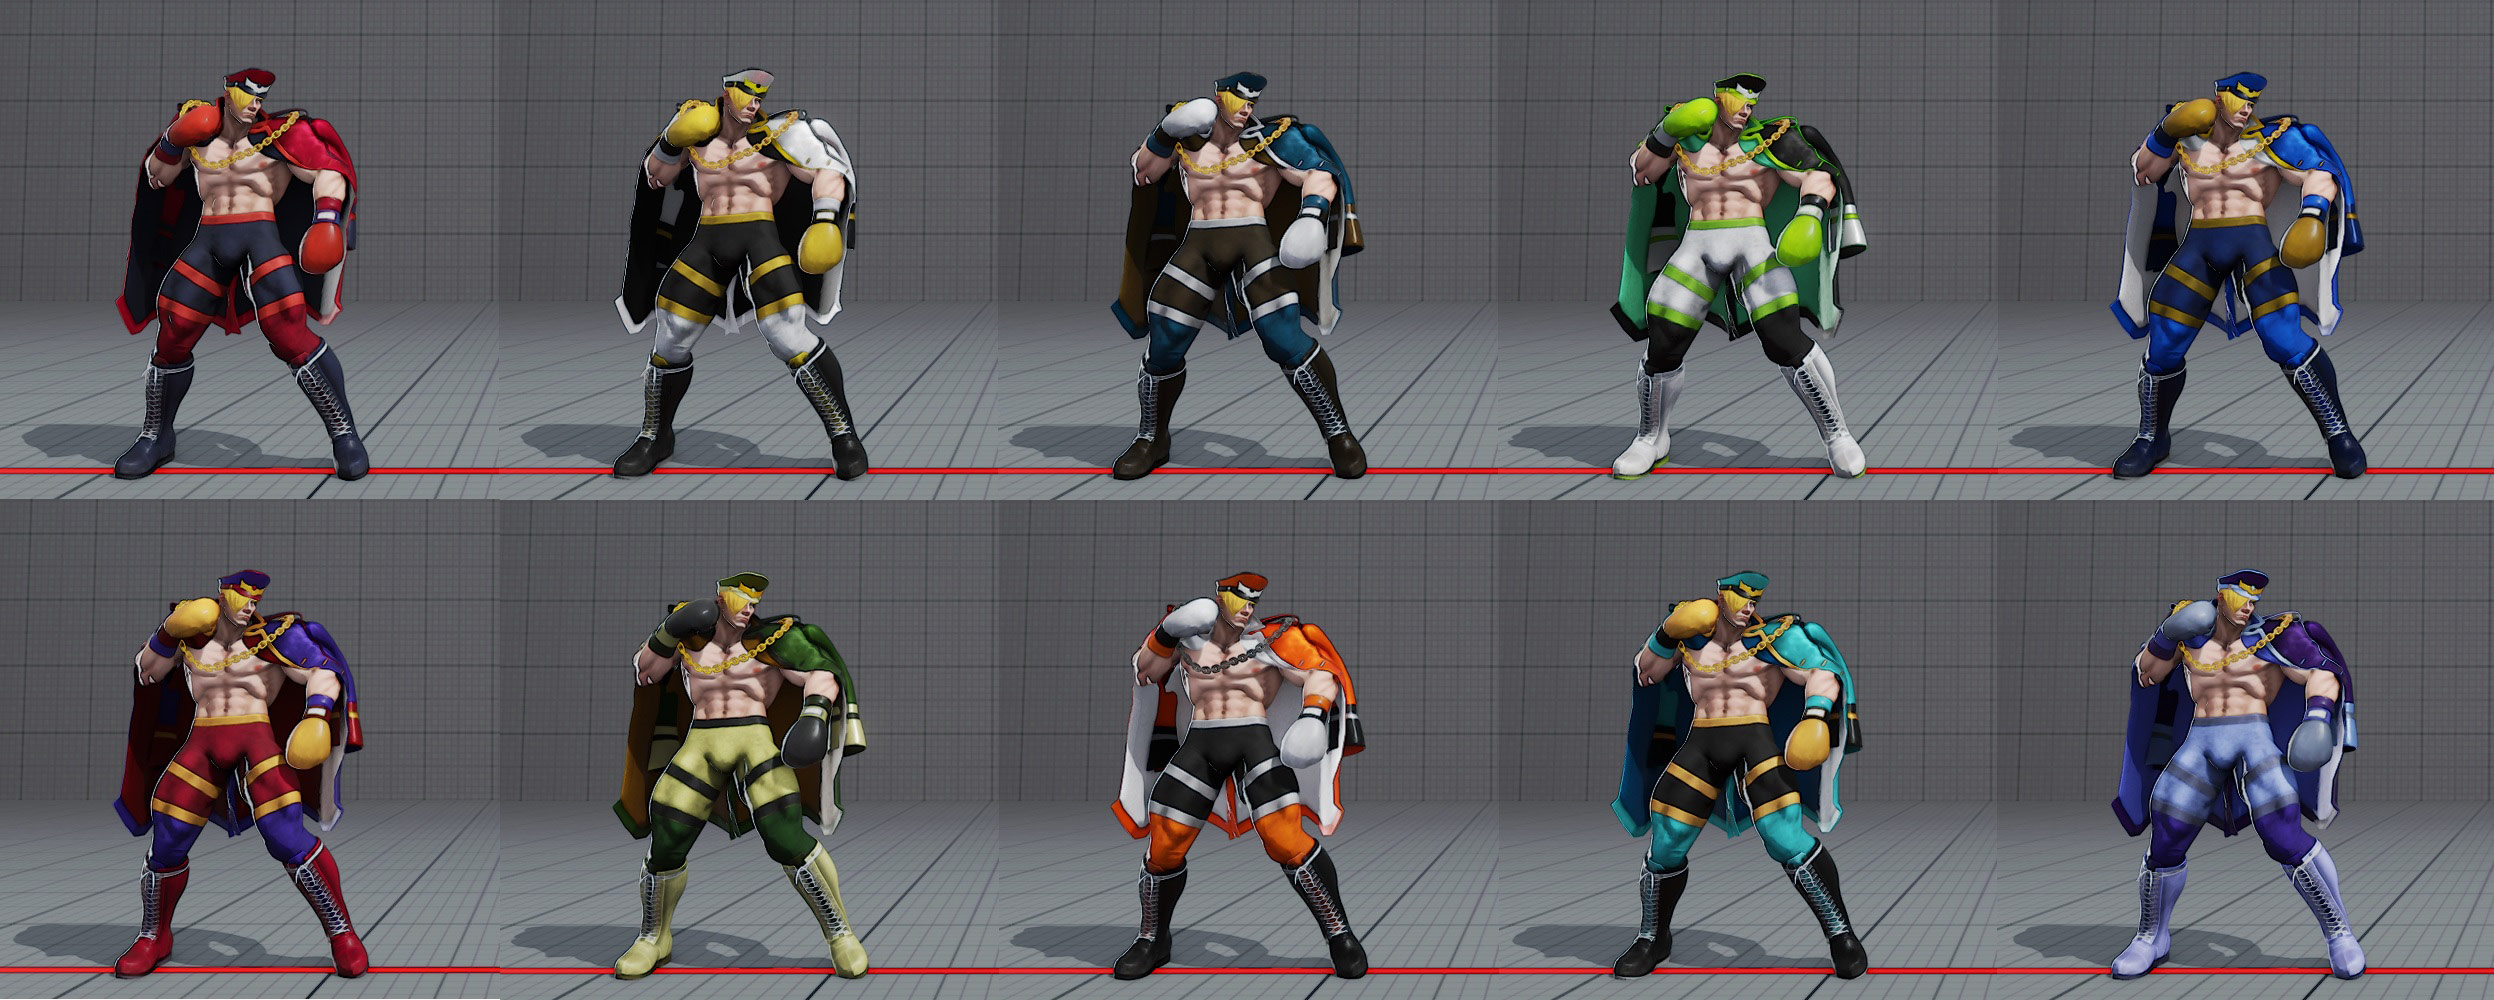 Ed's costumes and colors in Street Fighter 5 5 out of 6 image gallery